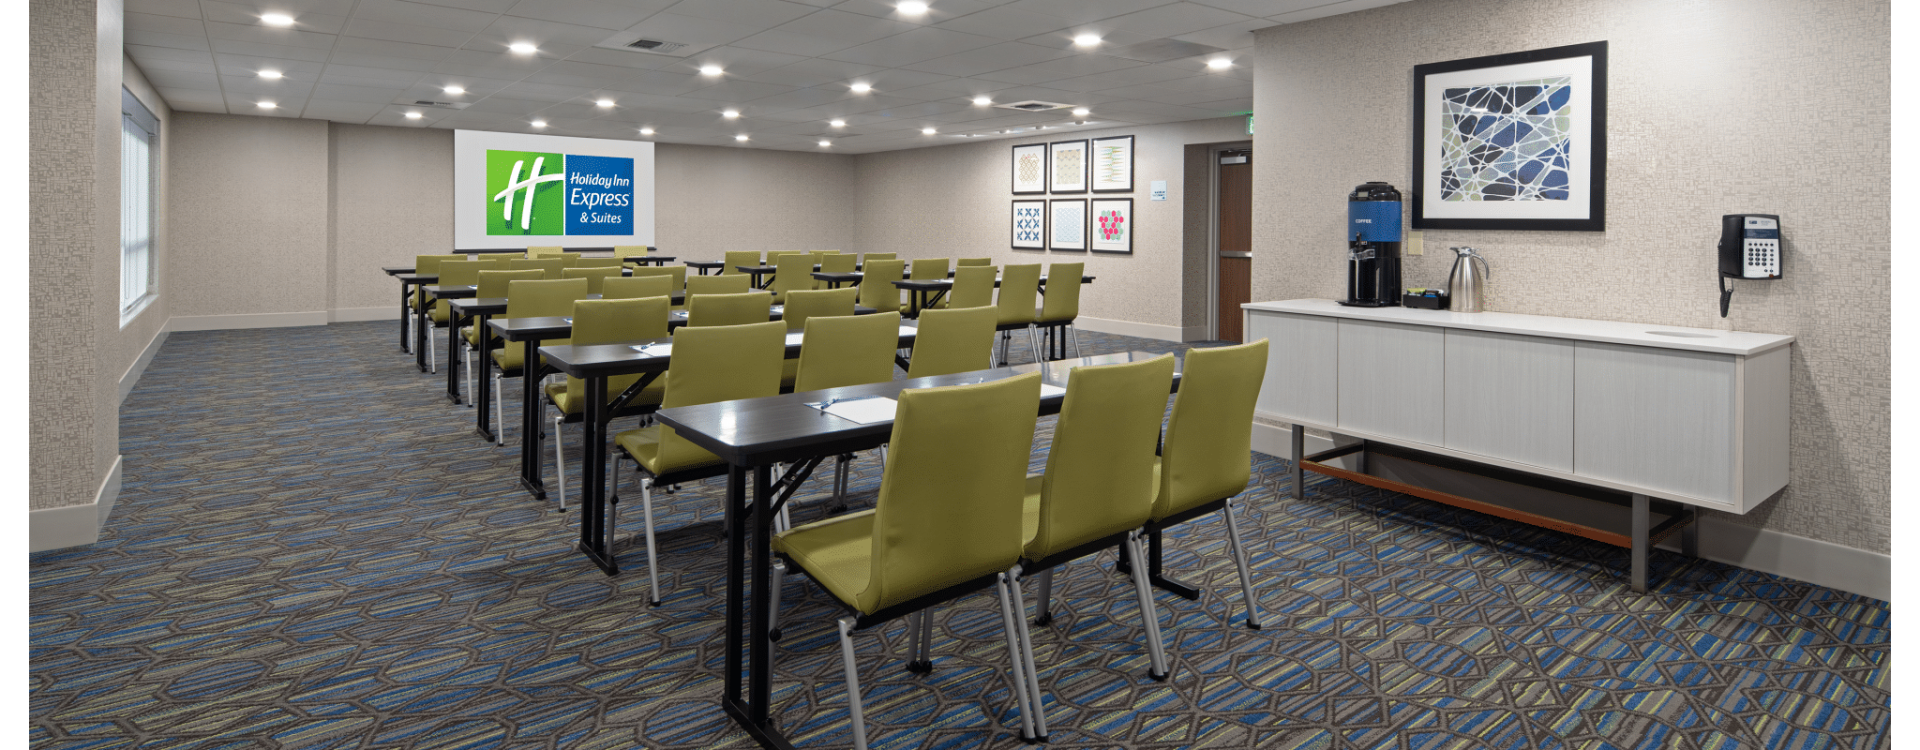 Holiday Inn Express Suites Seattle Sea-Tac Airport Evergreen Meeting Space